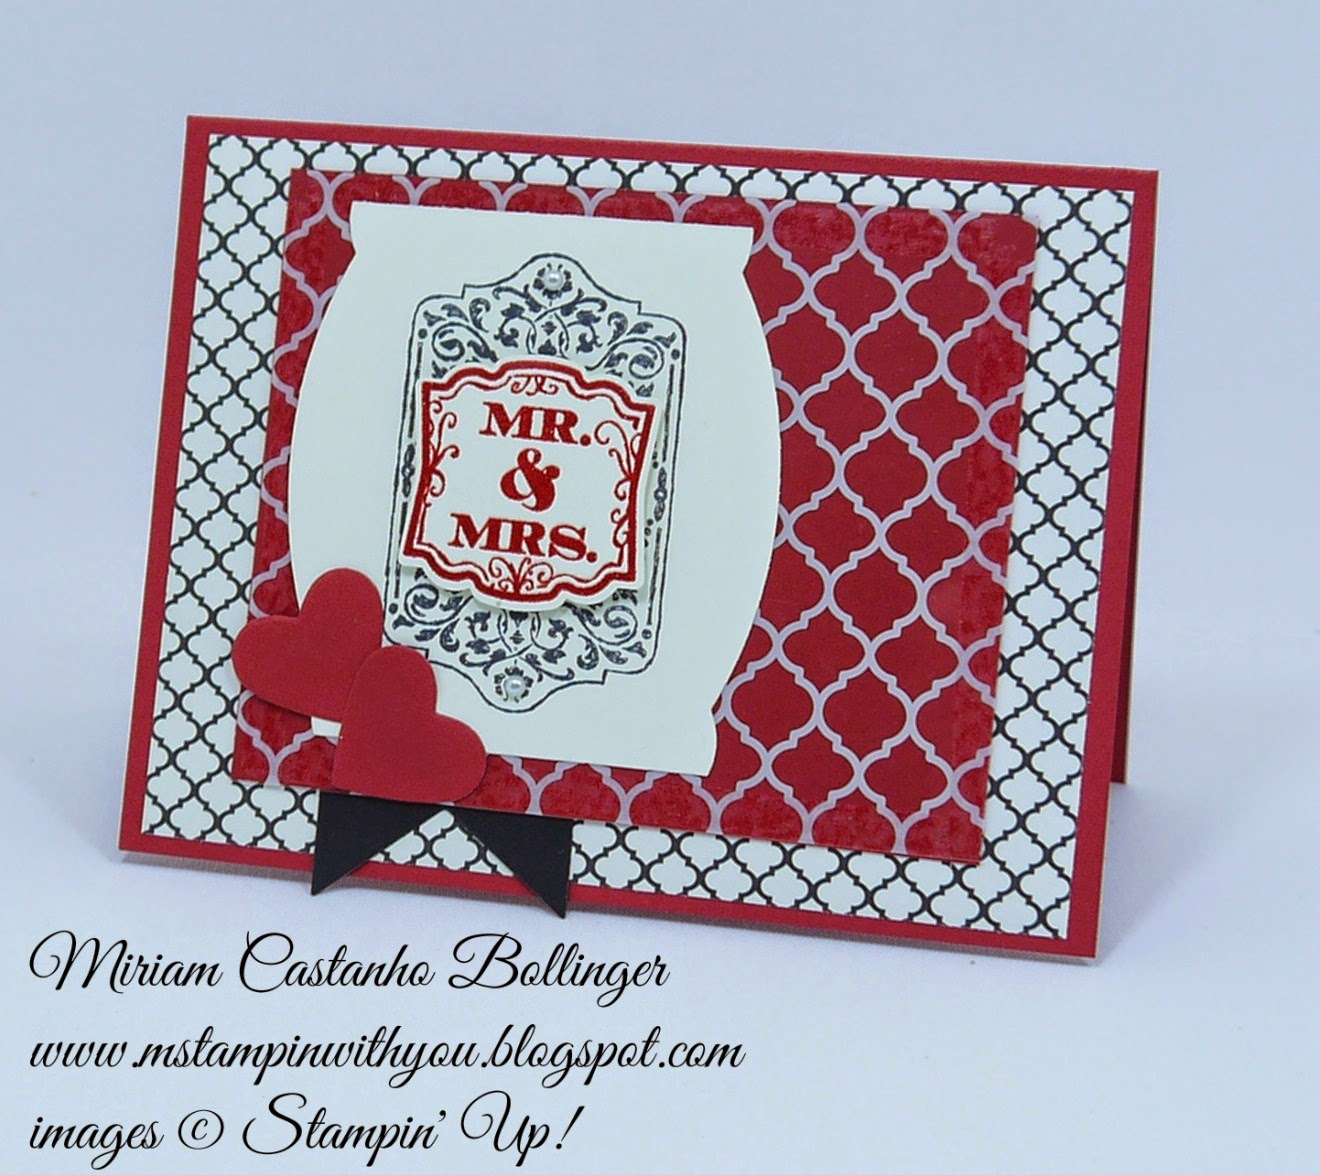 SSSC 232, Miriam Castanho Bollinger, #mstampinwithyou, stampin up, demonstrator, sssc, wedding card, chalk talk, label love, apothecary accents framelit, artisan label punch, banner framelit, heart collection framelit, modern medley, quatrefancy specialty dsp, su